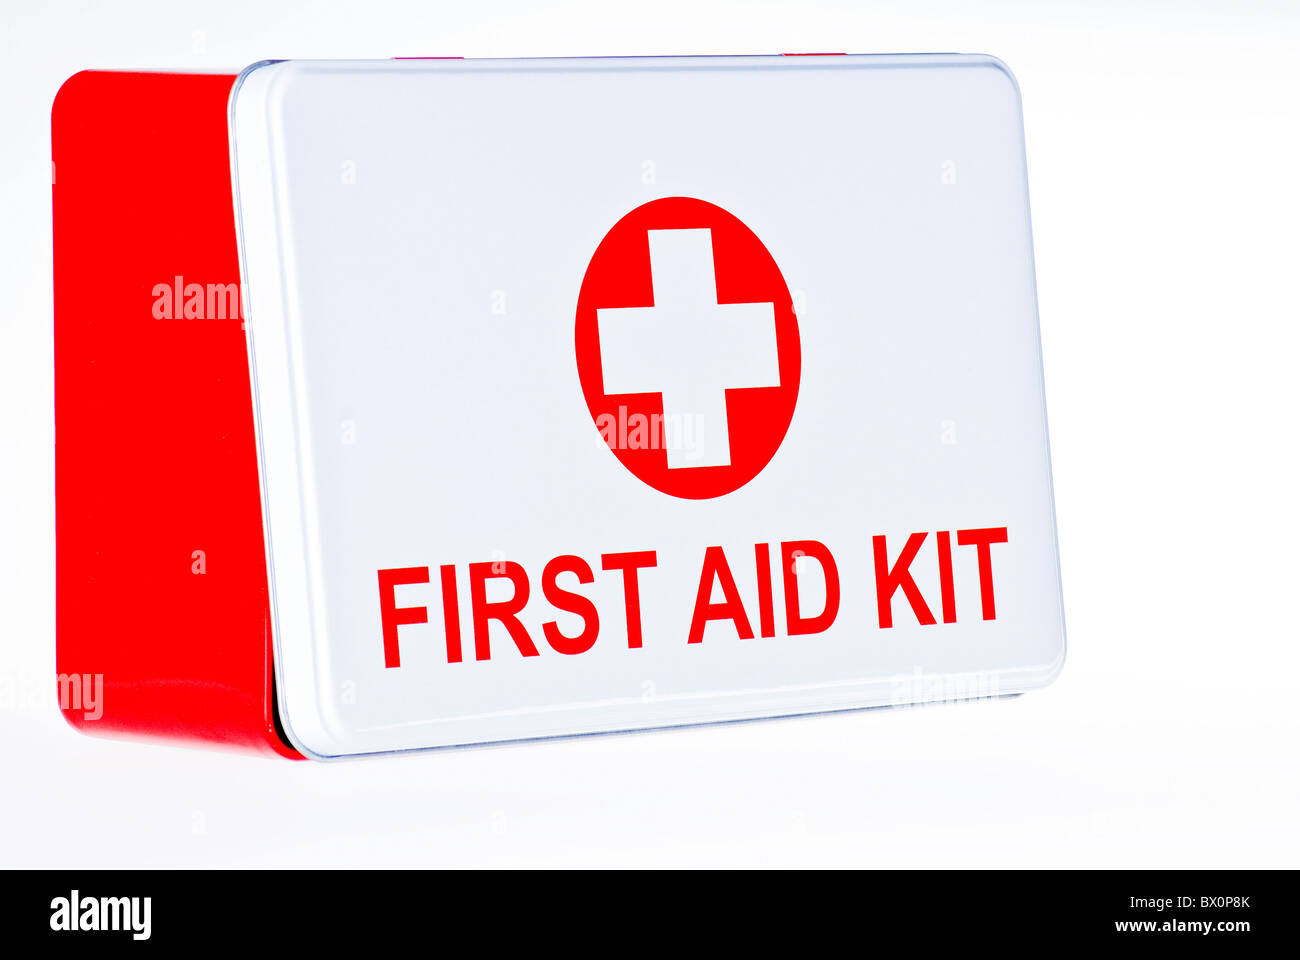 First aid kit box over white background - Stock Image